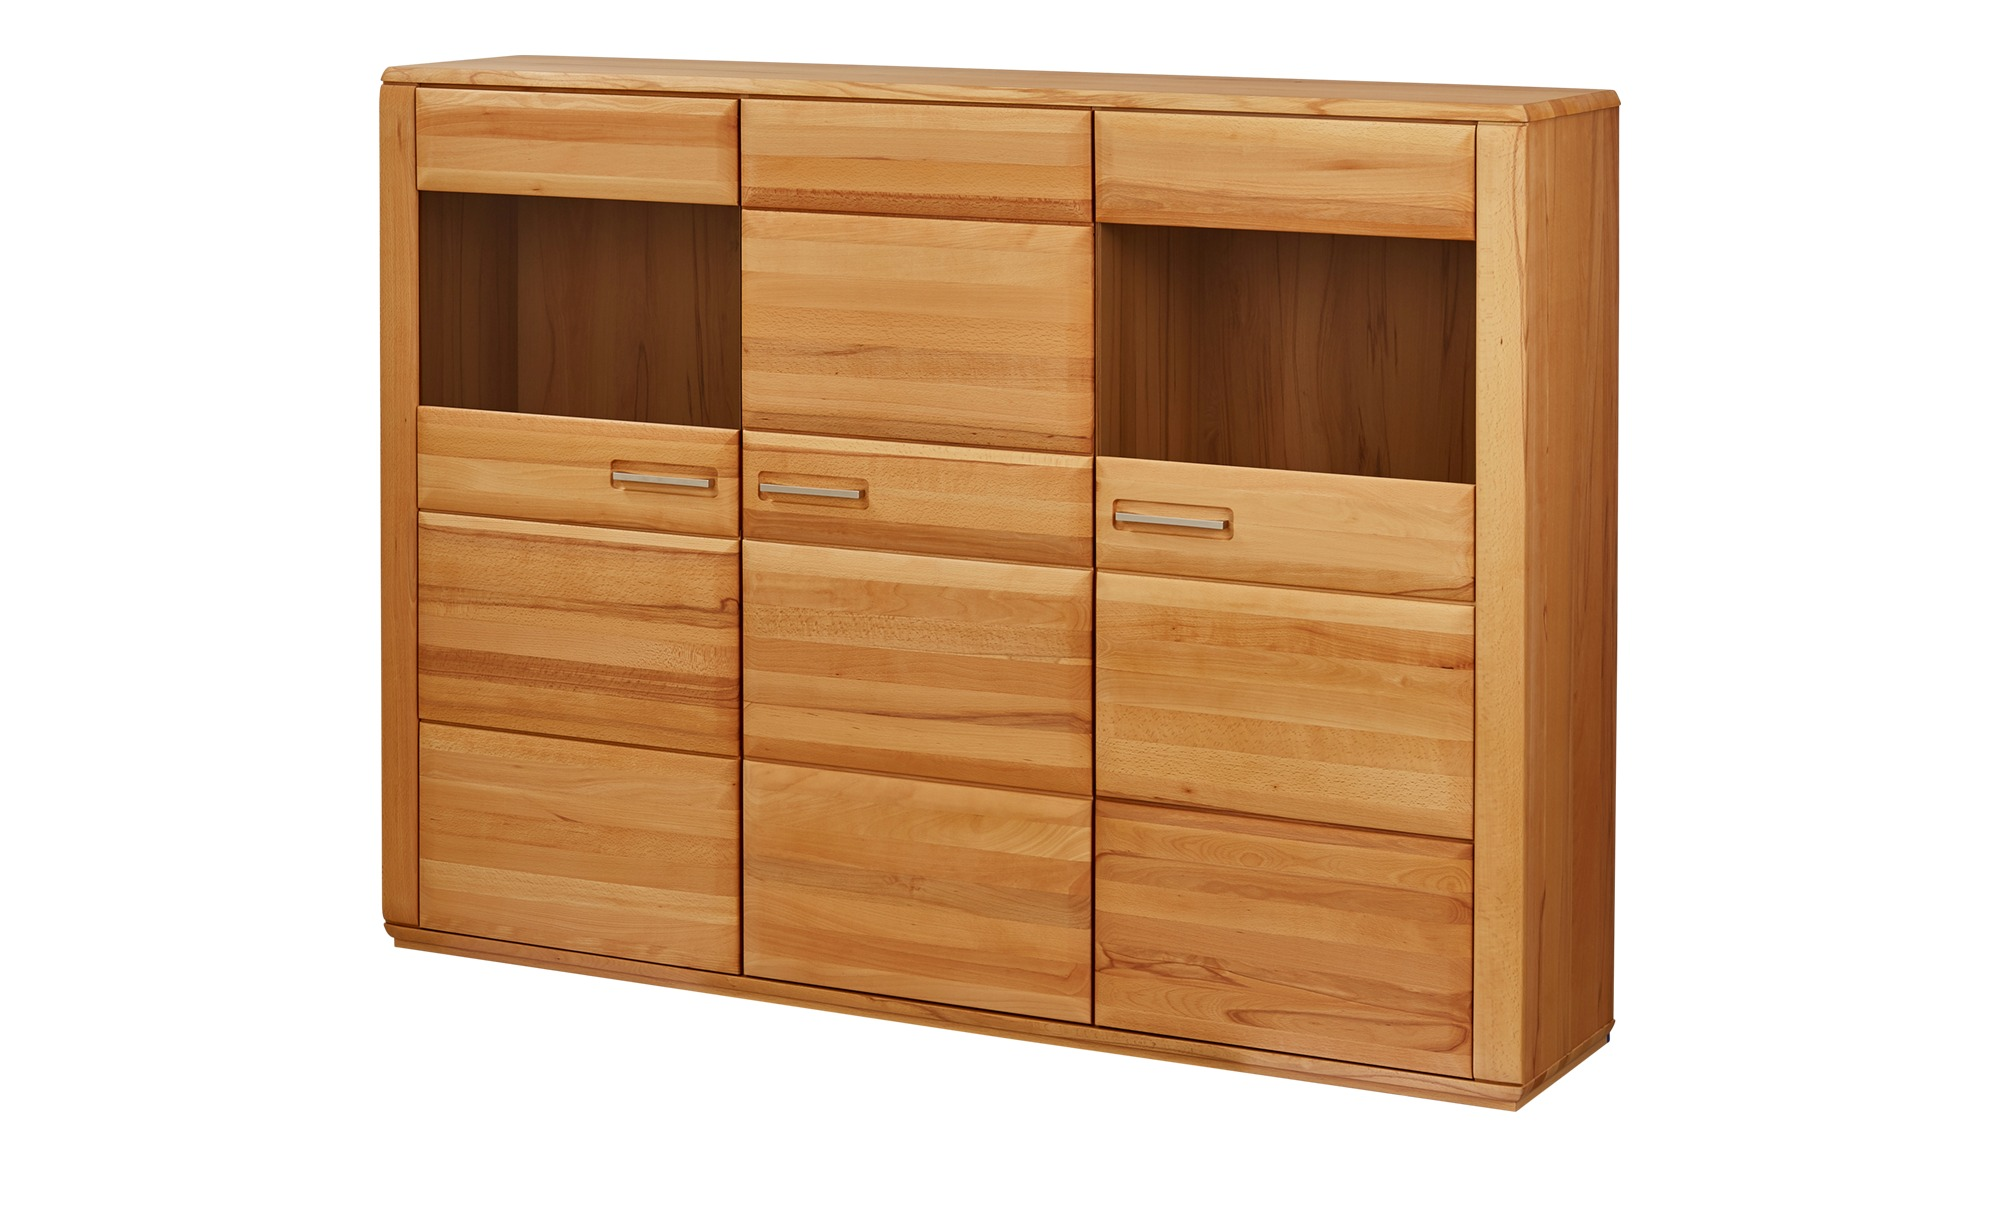 Woodford Highboard  Dio ¦ holzfarben ¦ Maße (cm): B: 179 H: 131 T: 38 Kommoden & Sideboards > Highboards - Höffner